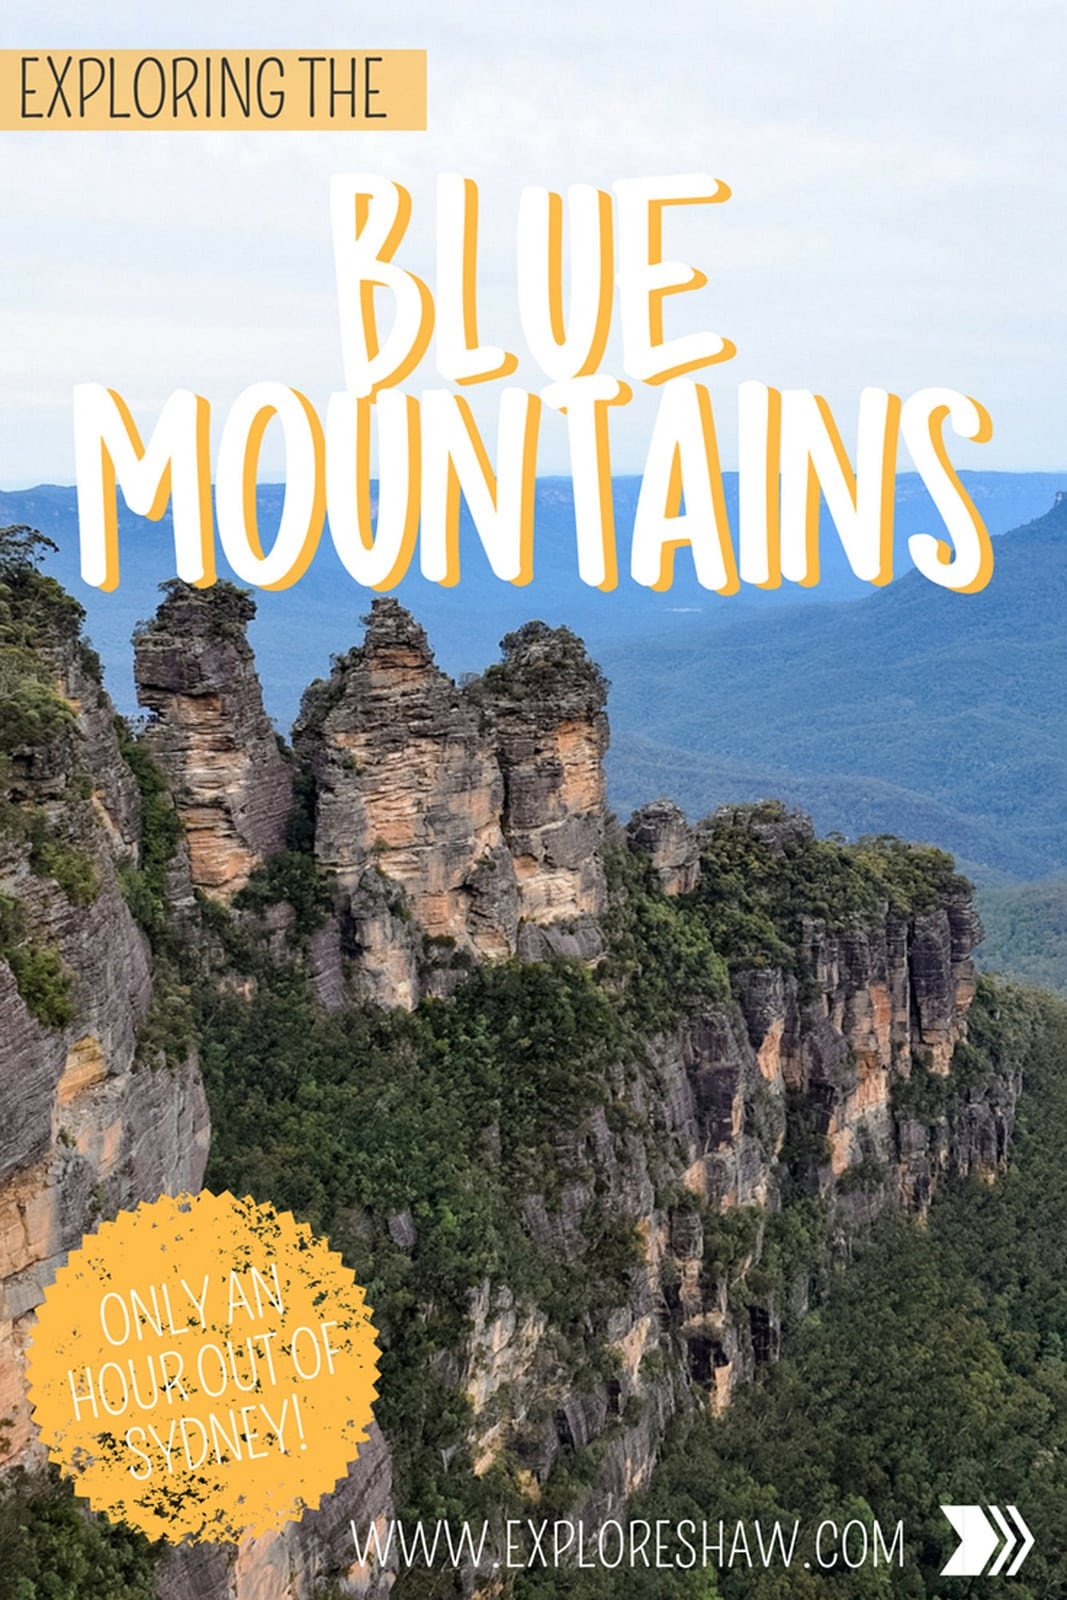 Overloaded with natural attractions, spectacular views and even the steepest incline railway in the world there's so much more to the Blue Mountains than anyone would expect, and it can definitely take a couple of days to get through them all. #Australia #NewSouthWales #TheBlueMountains